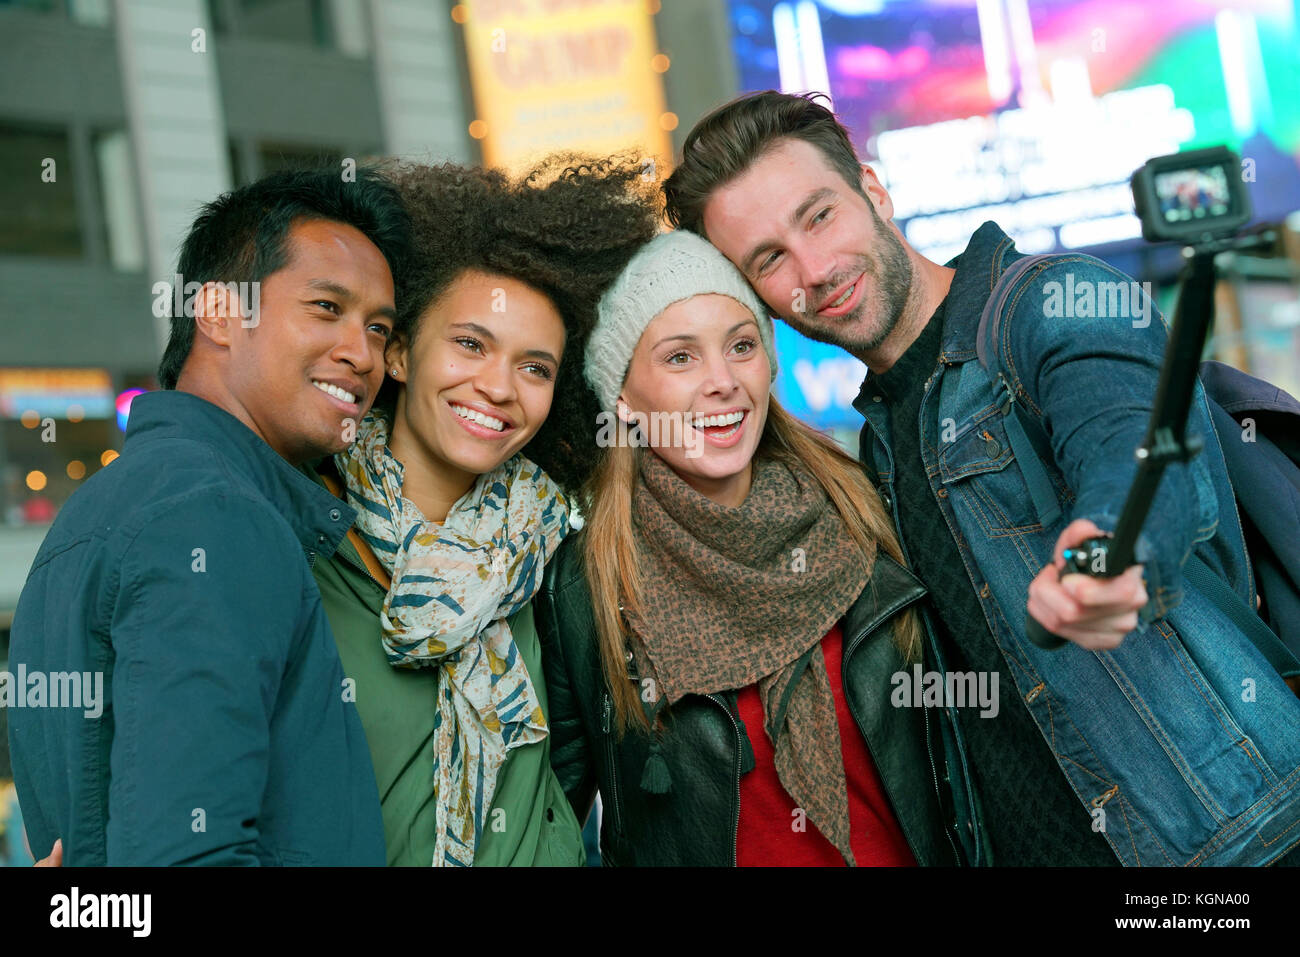 Friends at Times Square taking selfie picture - Stock Image